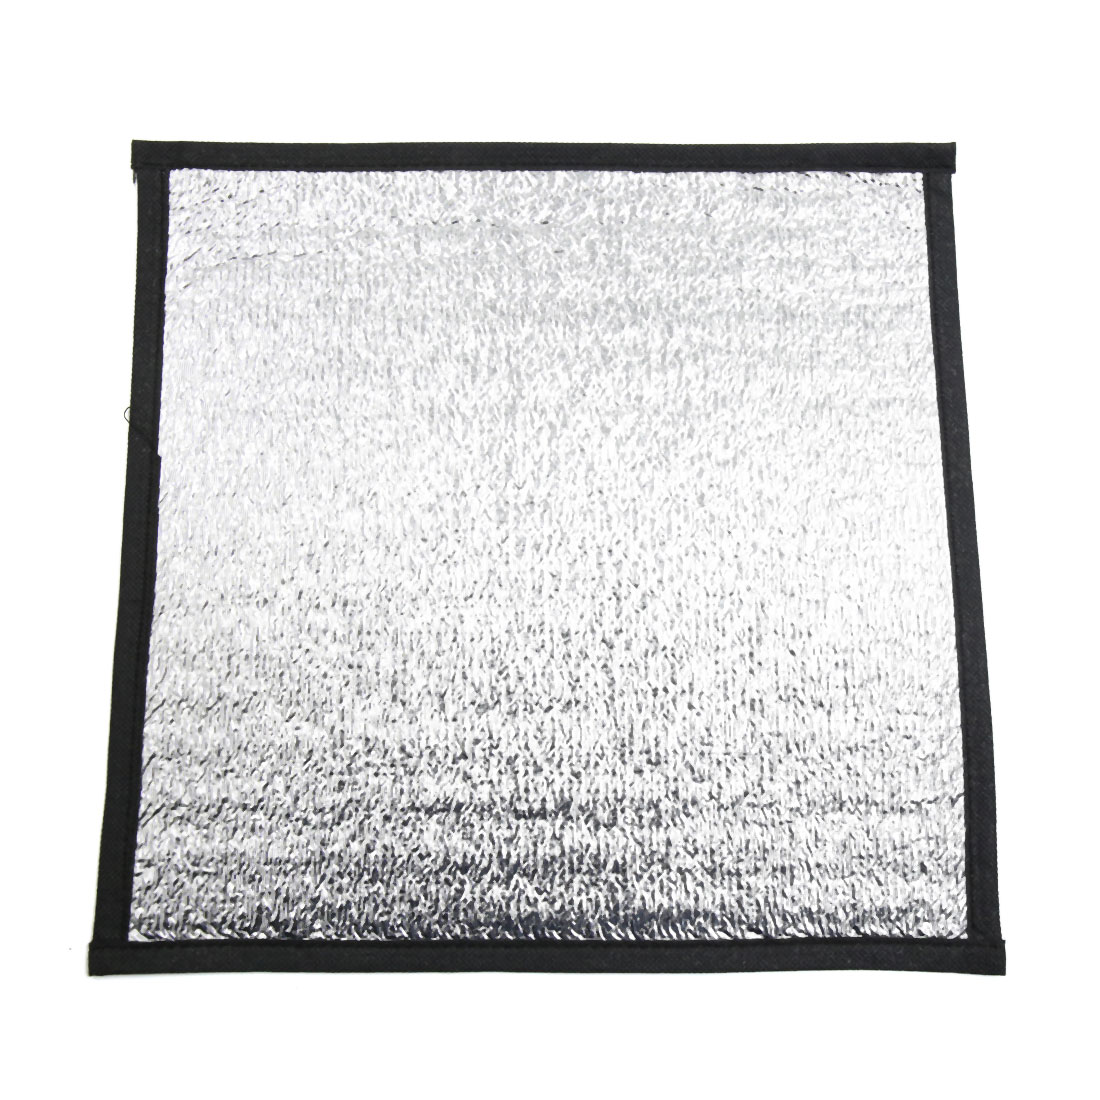 11.8x11.8 Inch Reflective Film Mat for Terrarium Reptiles Snakes Frogs Turtles by Unique-Bargains